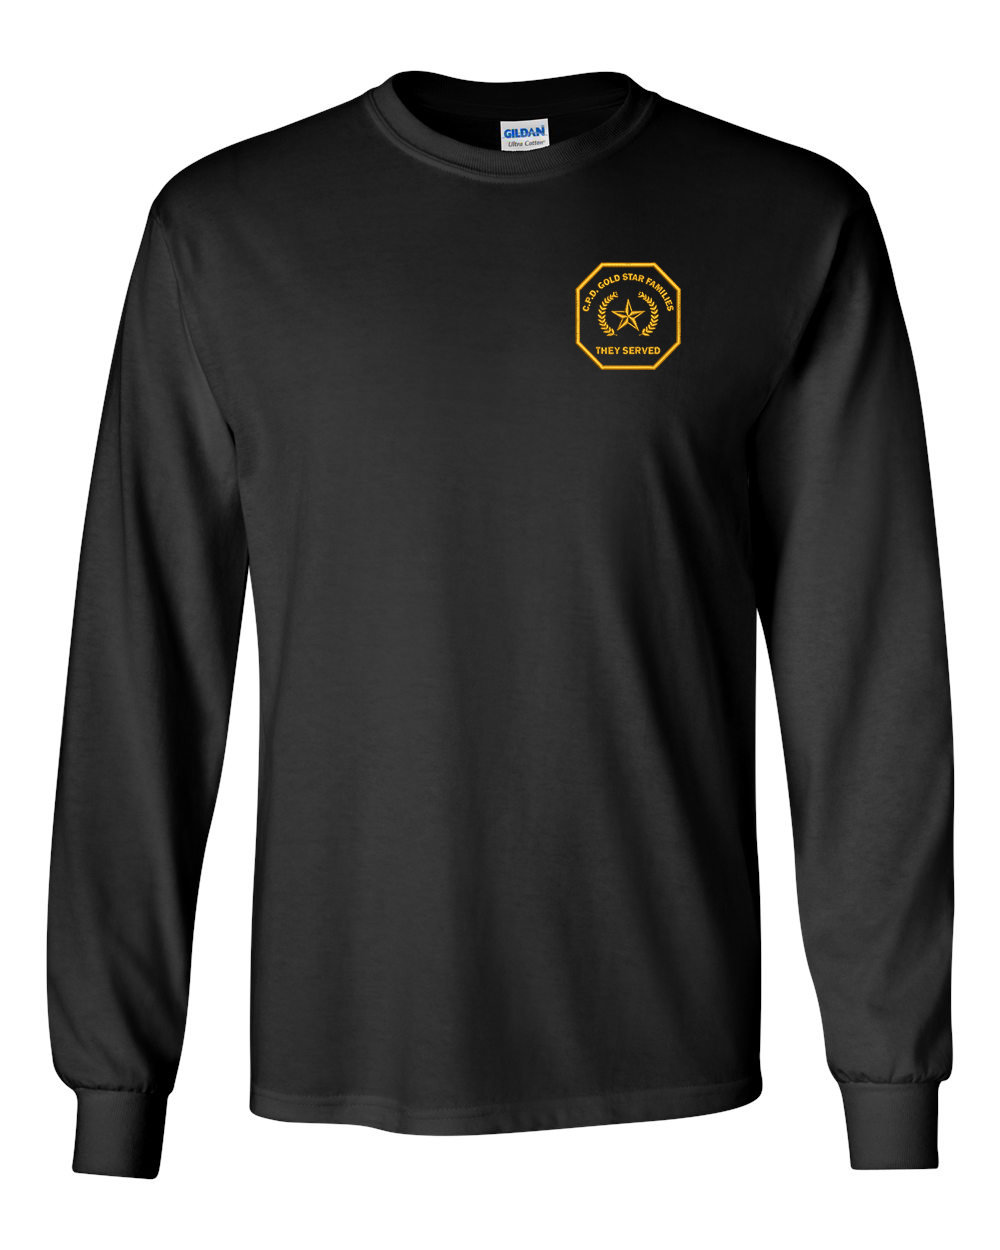 Gold Star Family Long Sleeve Embroidered T-Shirt 2400